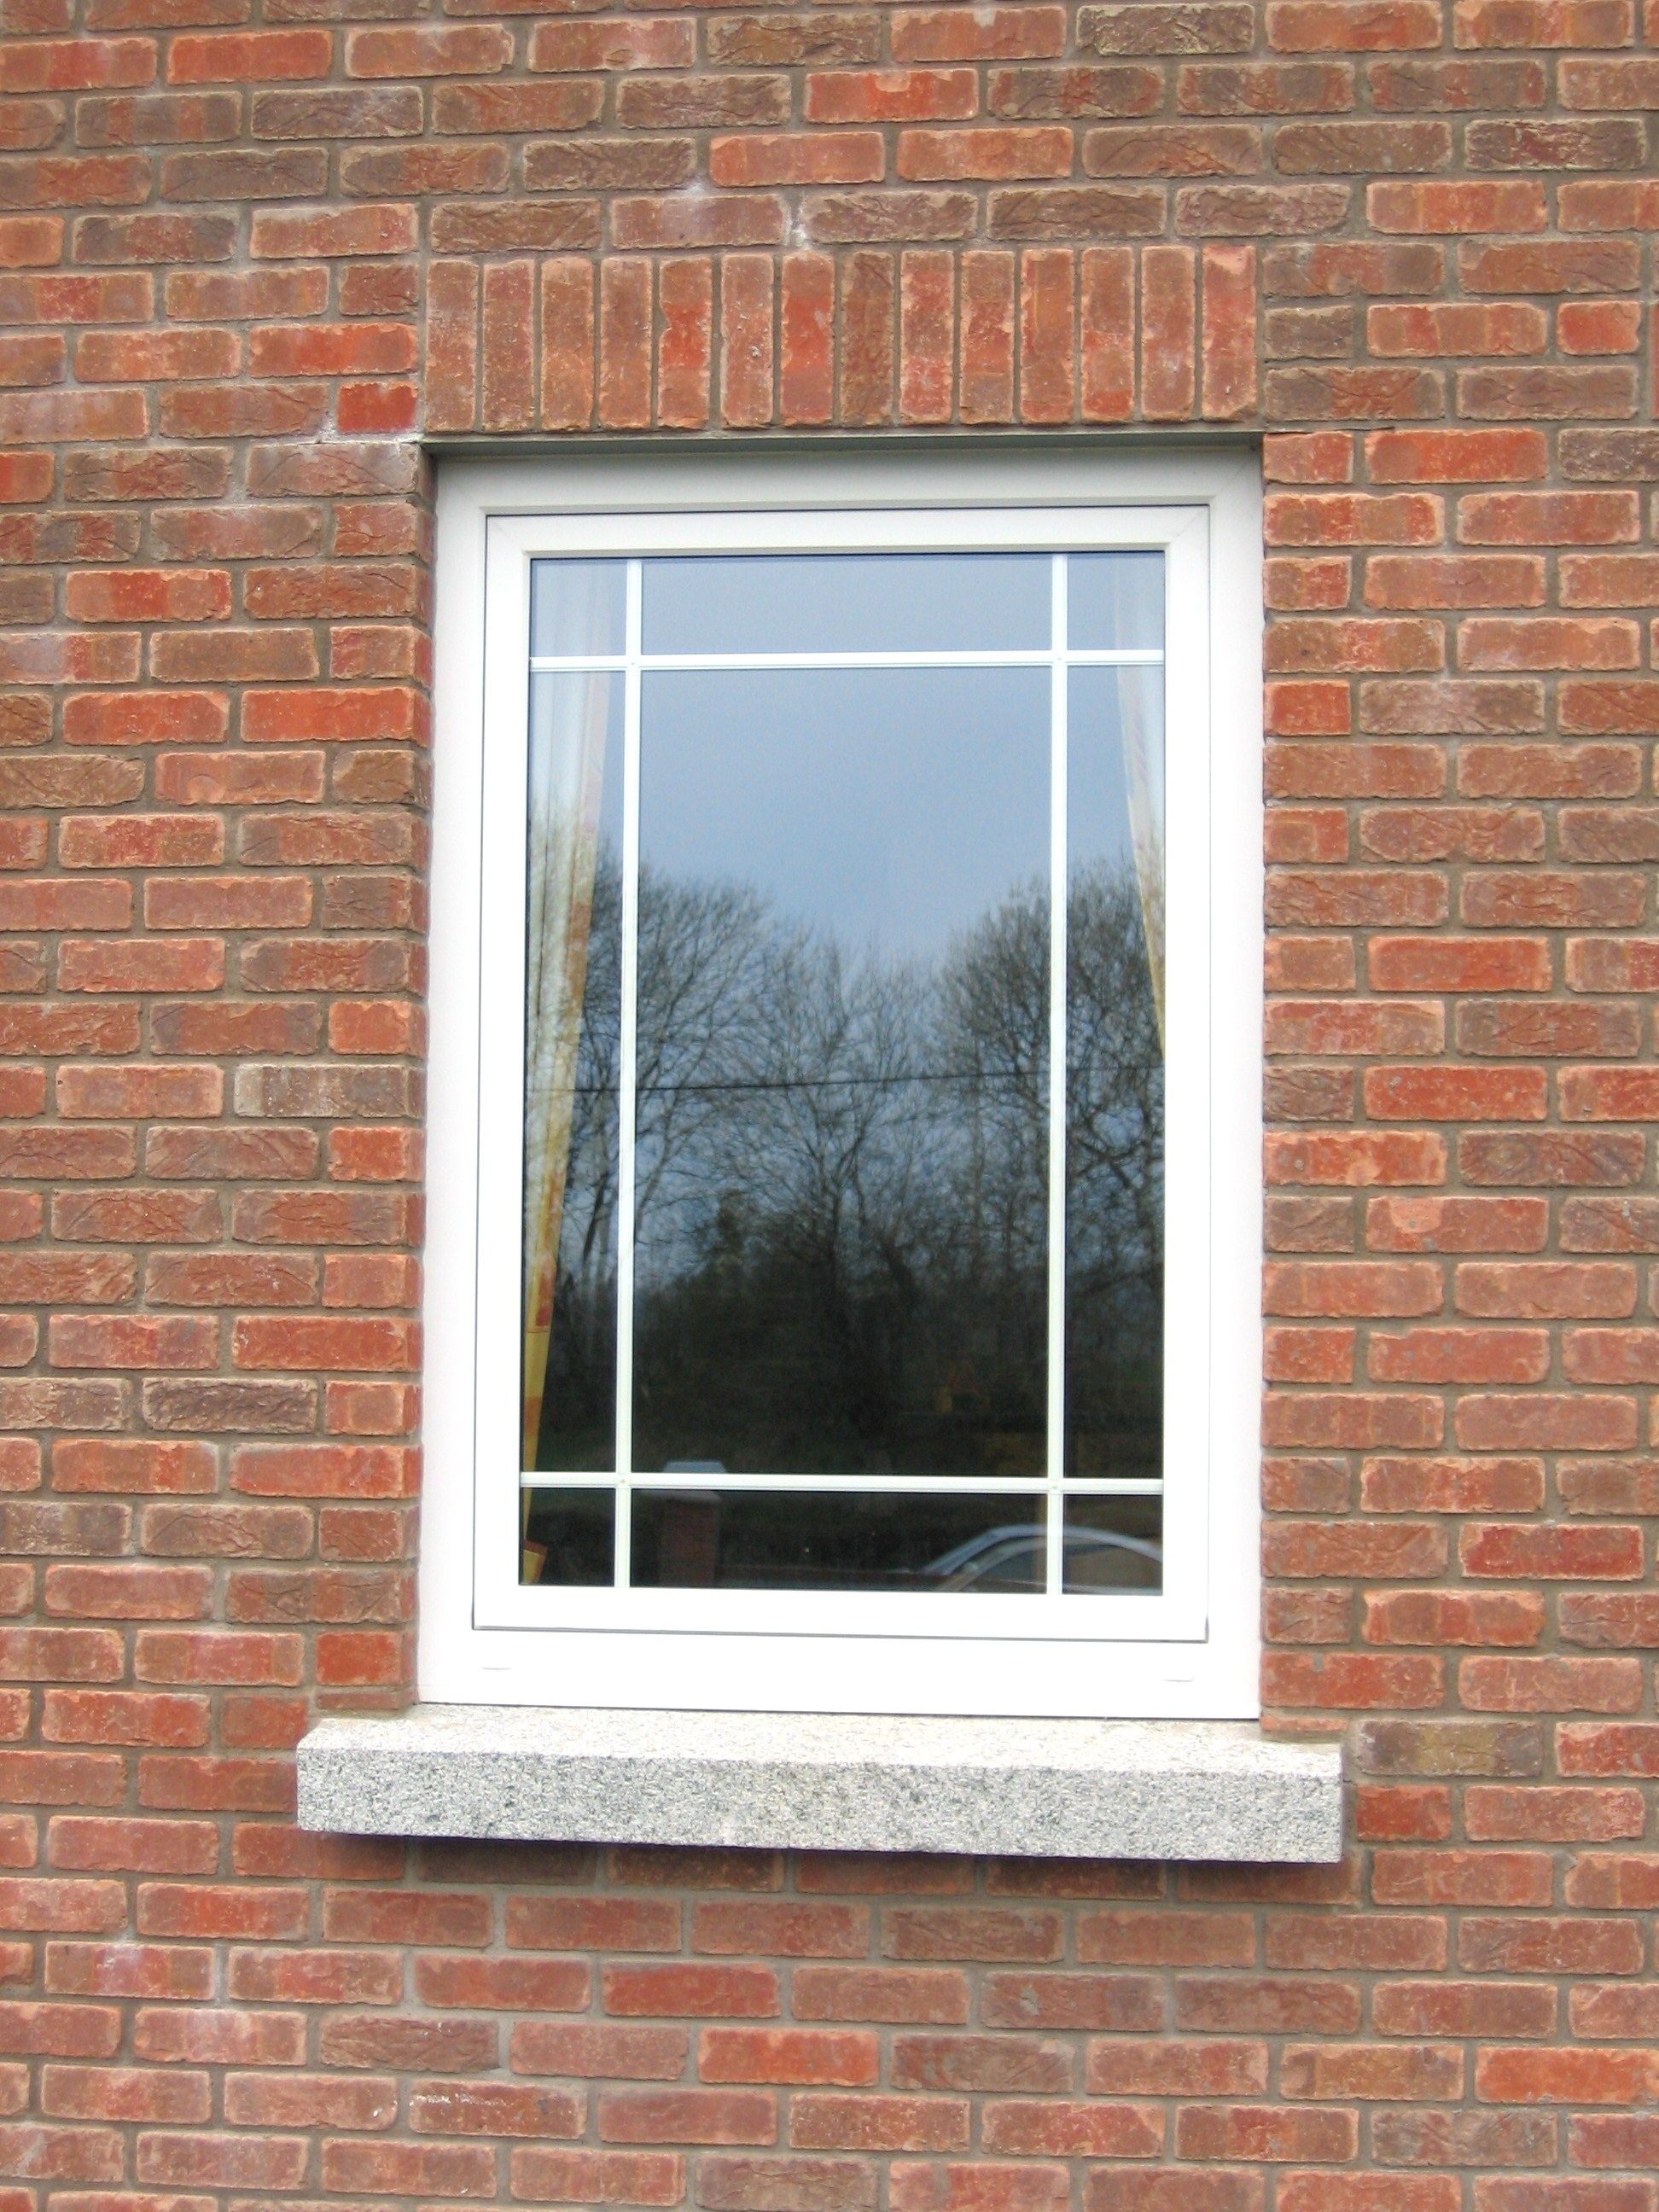 Windowsill Designs Exterior Google Search Windows Pinterest Window Window Design And